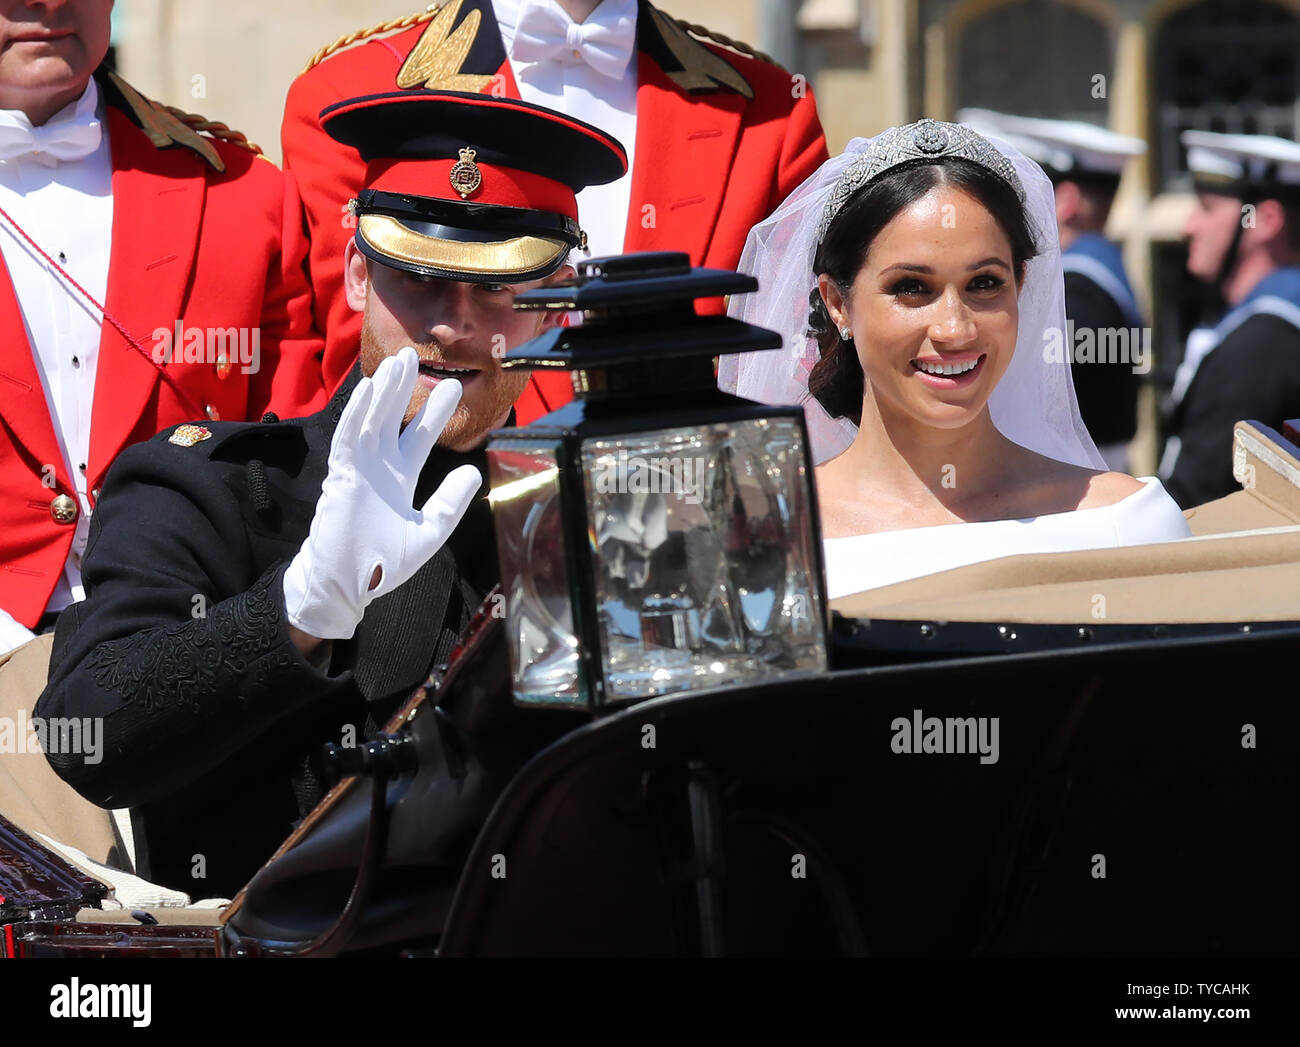 Prince Harry and his wife Meghan Markle leave in the Royal carriage from St George's Chapel in Windsor Castle in Windsor, England on May 19, 2018.   The couple have been bestowed the royal titles of Duke and Duchess of Sussex on them by the British monarch.    Photo by Hugo Philpott/UPI Stock Photo